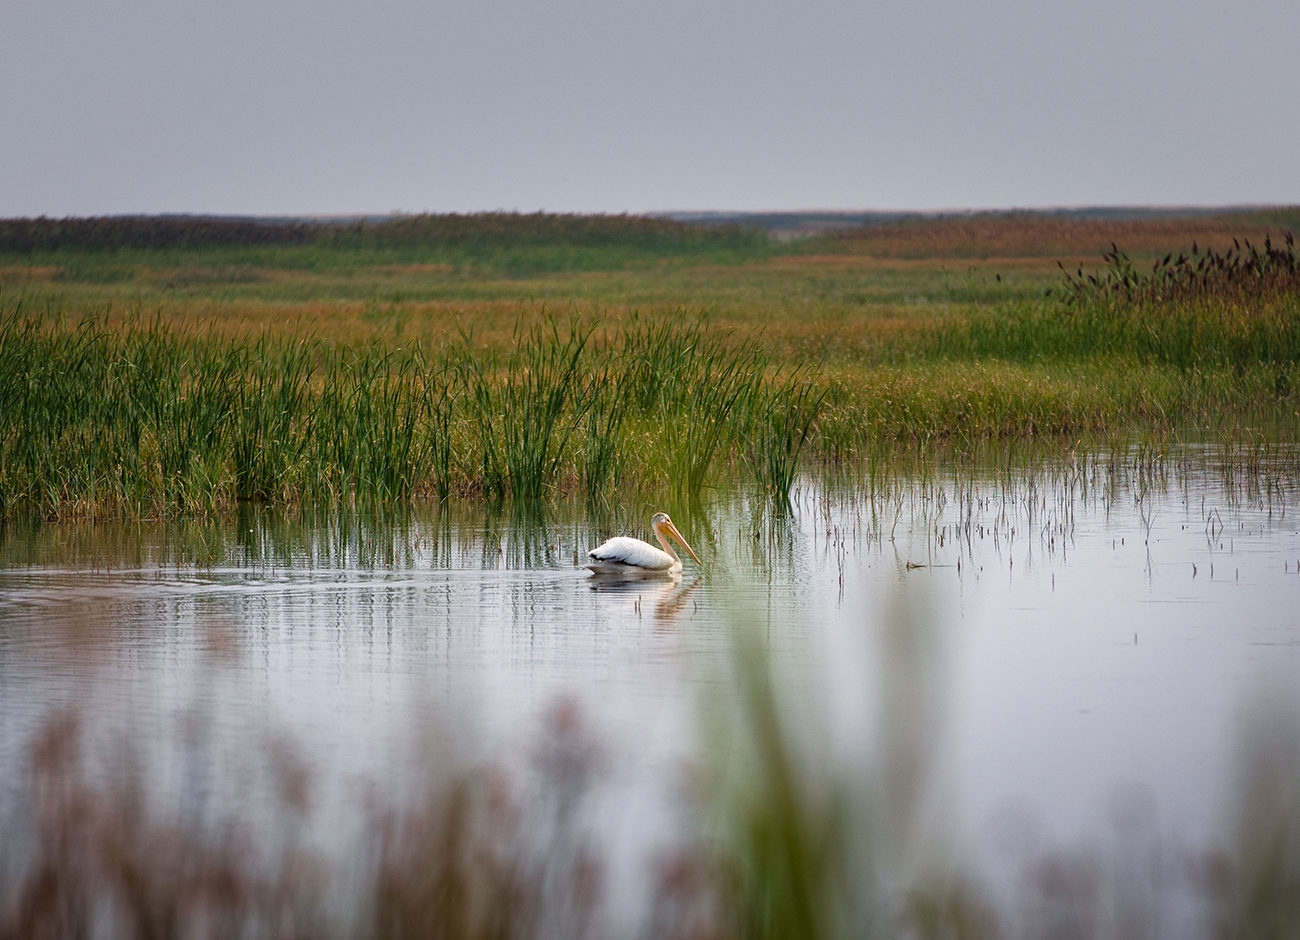 An American White Pelican forages in a marsh